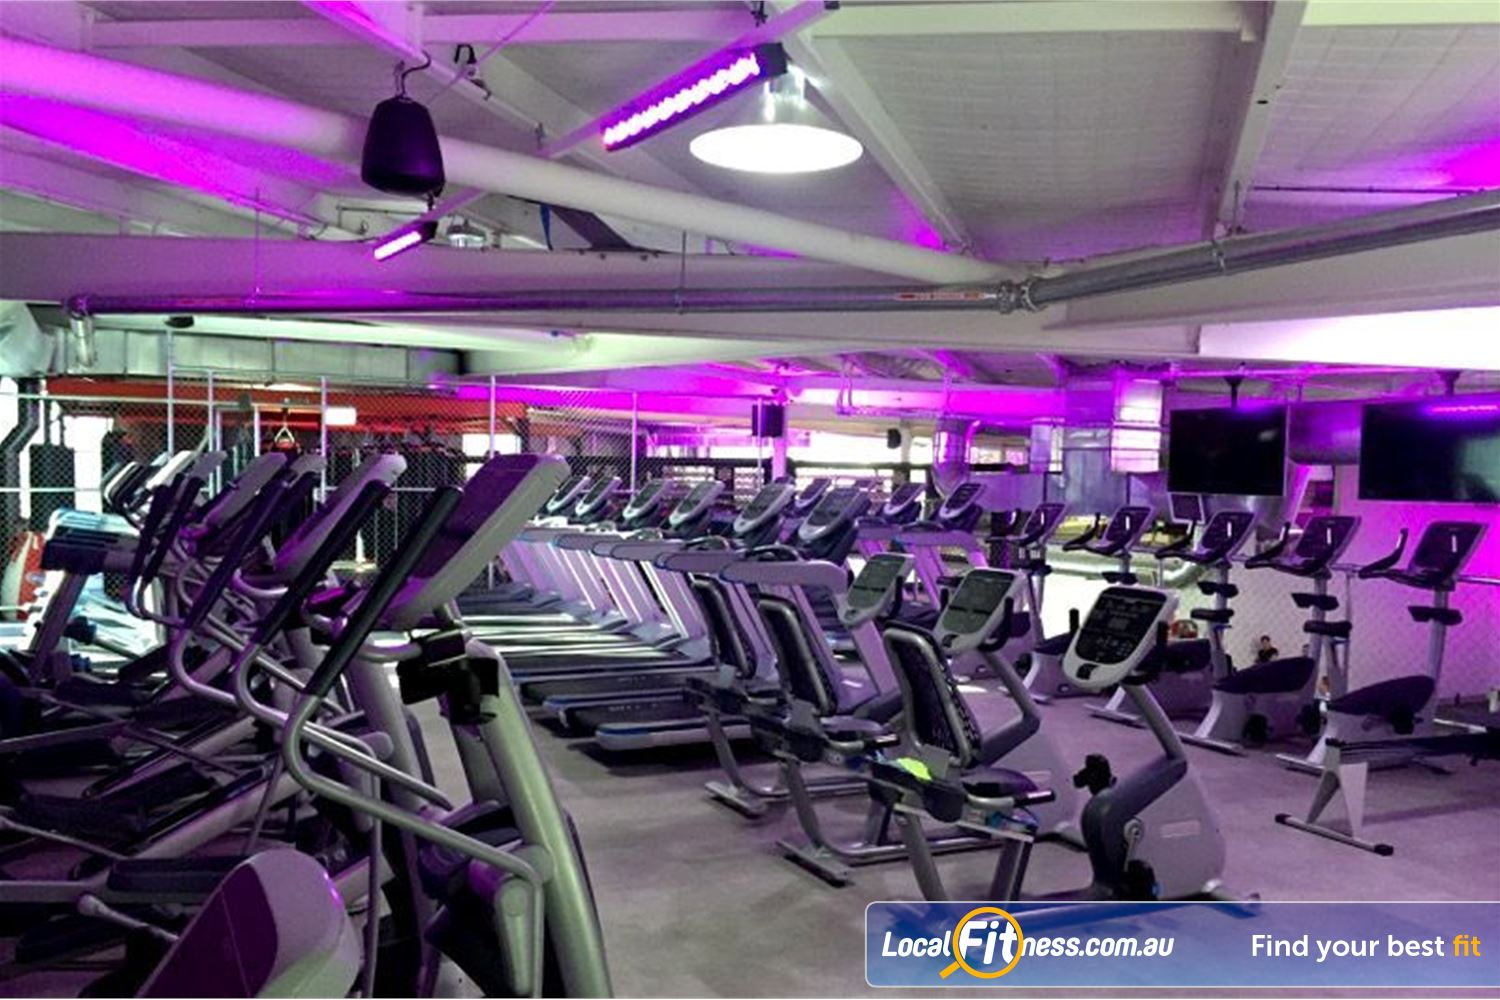 Goodlife Health Clubs Near Meadowbrook State of the art cardio area with level 2 views of our gym.